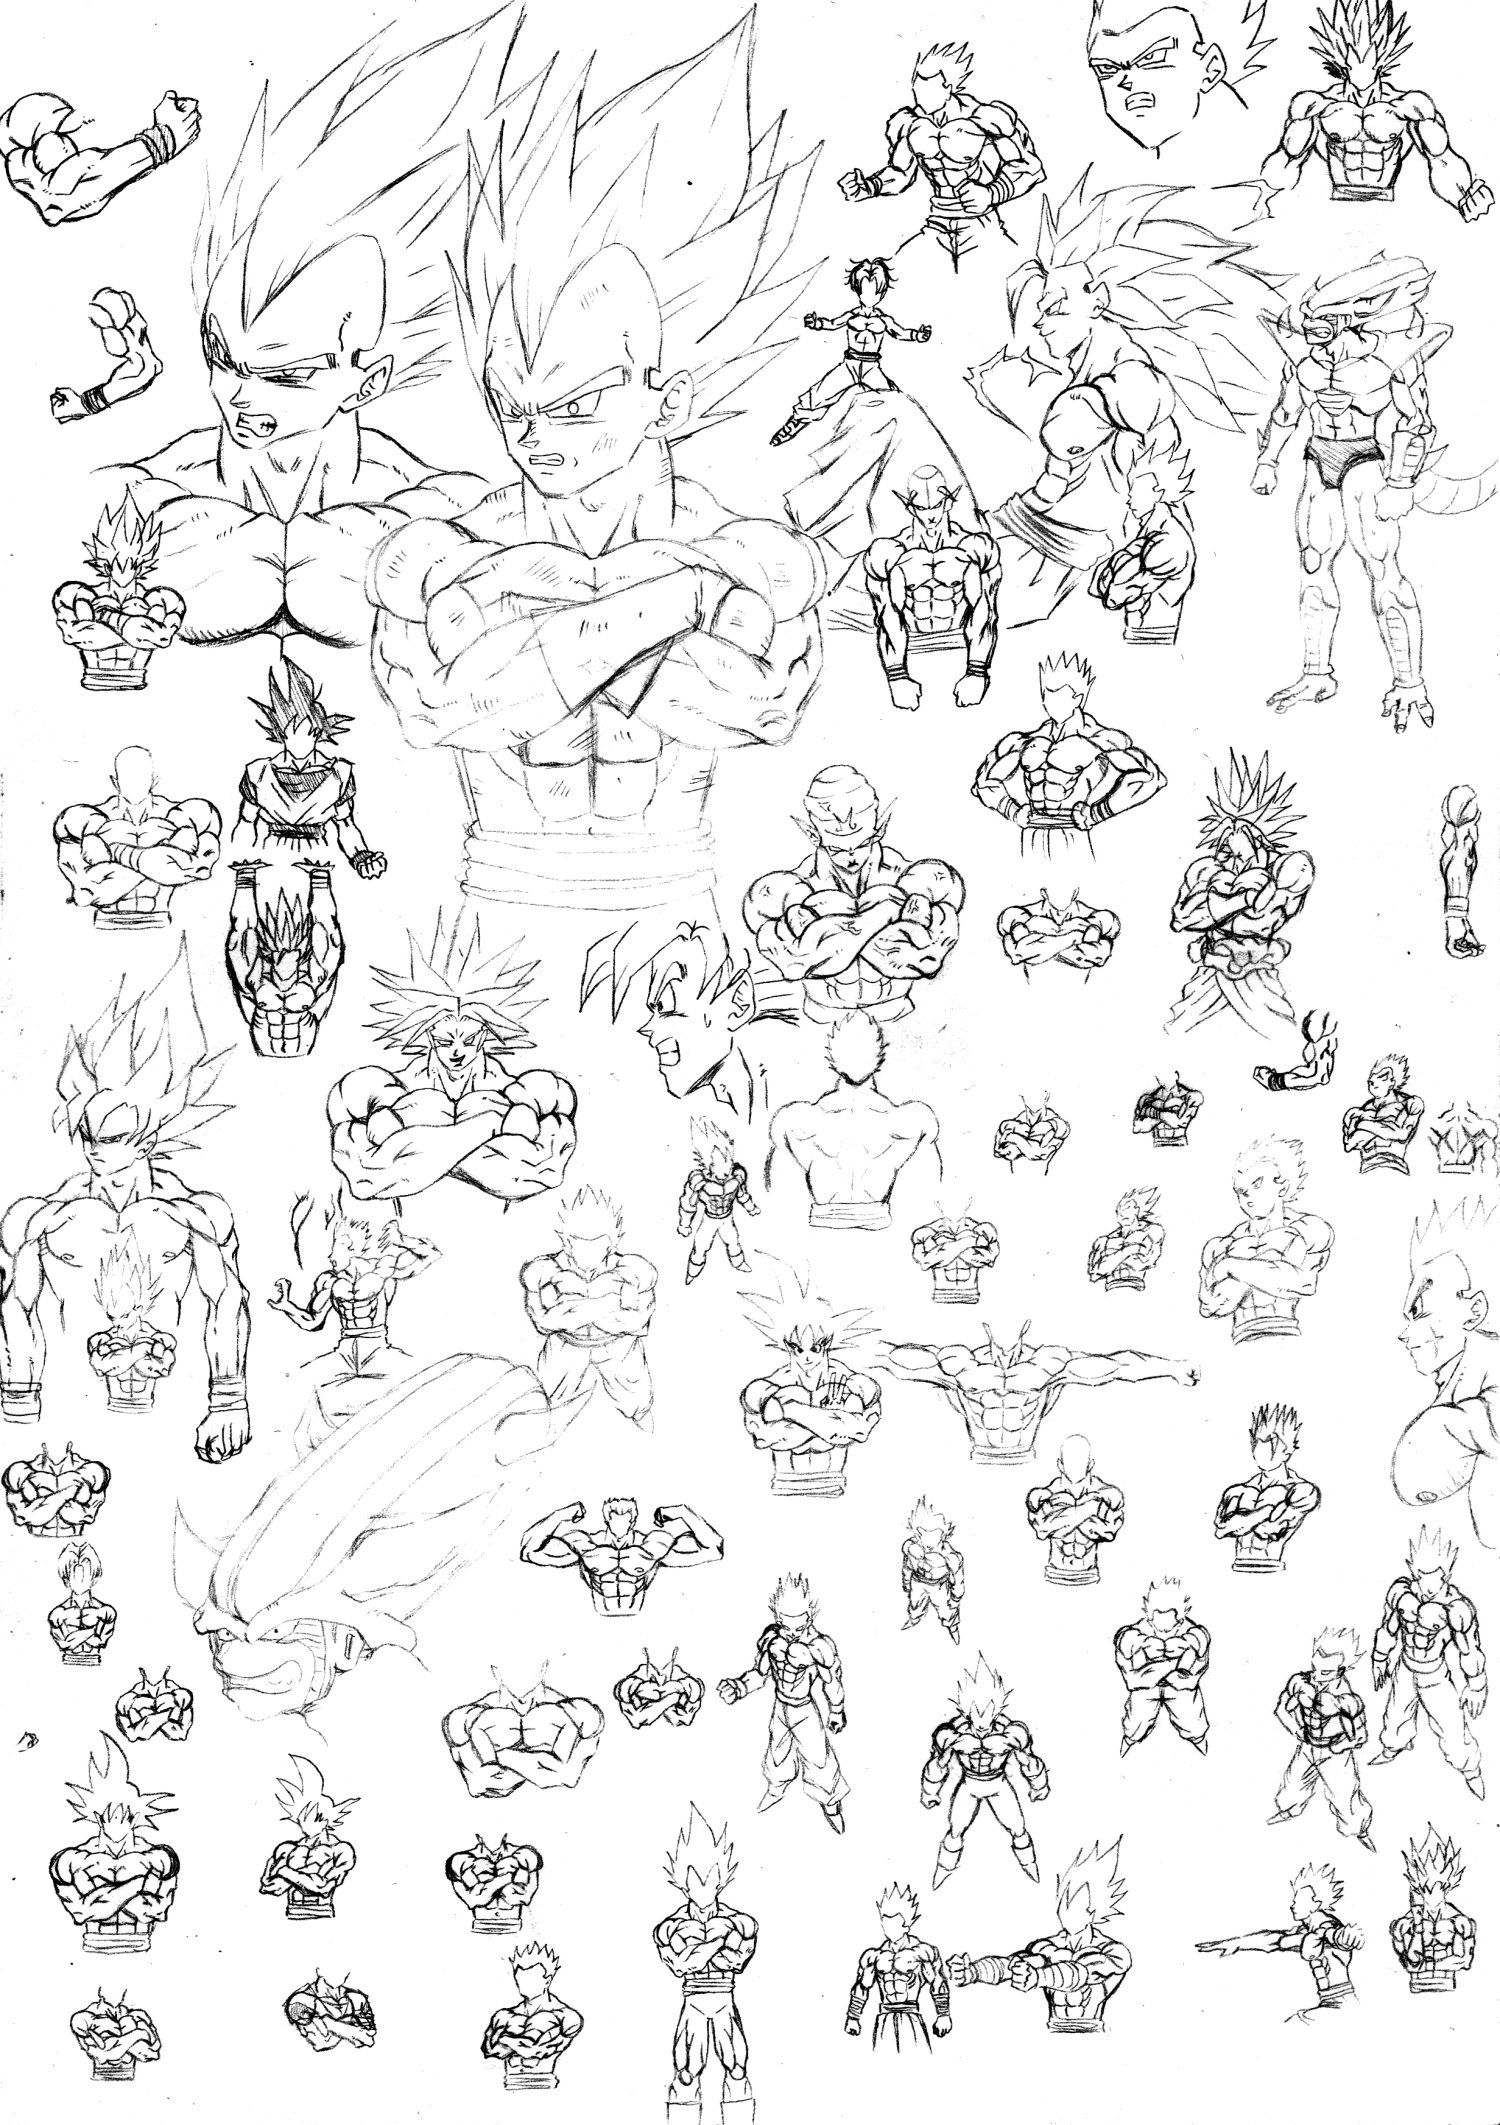 Pin by stephen patterson on dragon ball z pinterest - Dessin de dragon ball ...